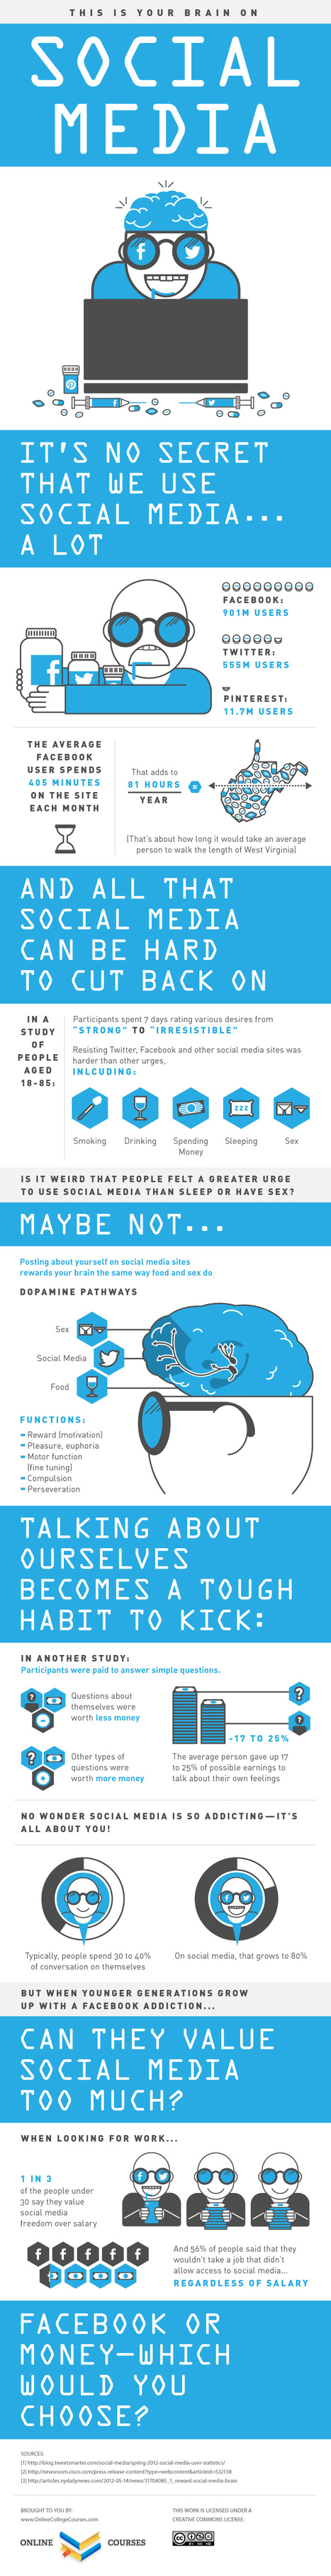 The Impact of Social Media on our Brain [Infographic] | Enrjtk Educatr | Scoop.it